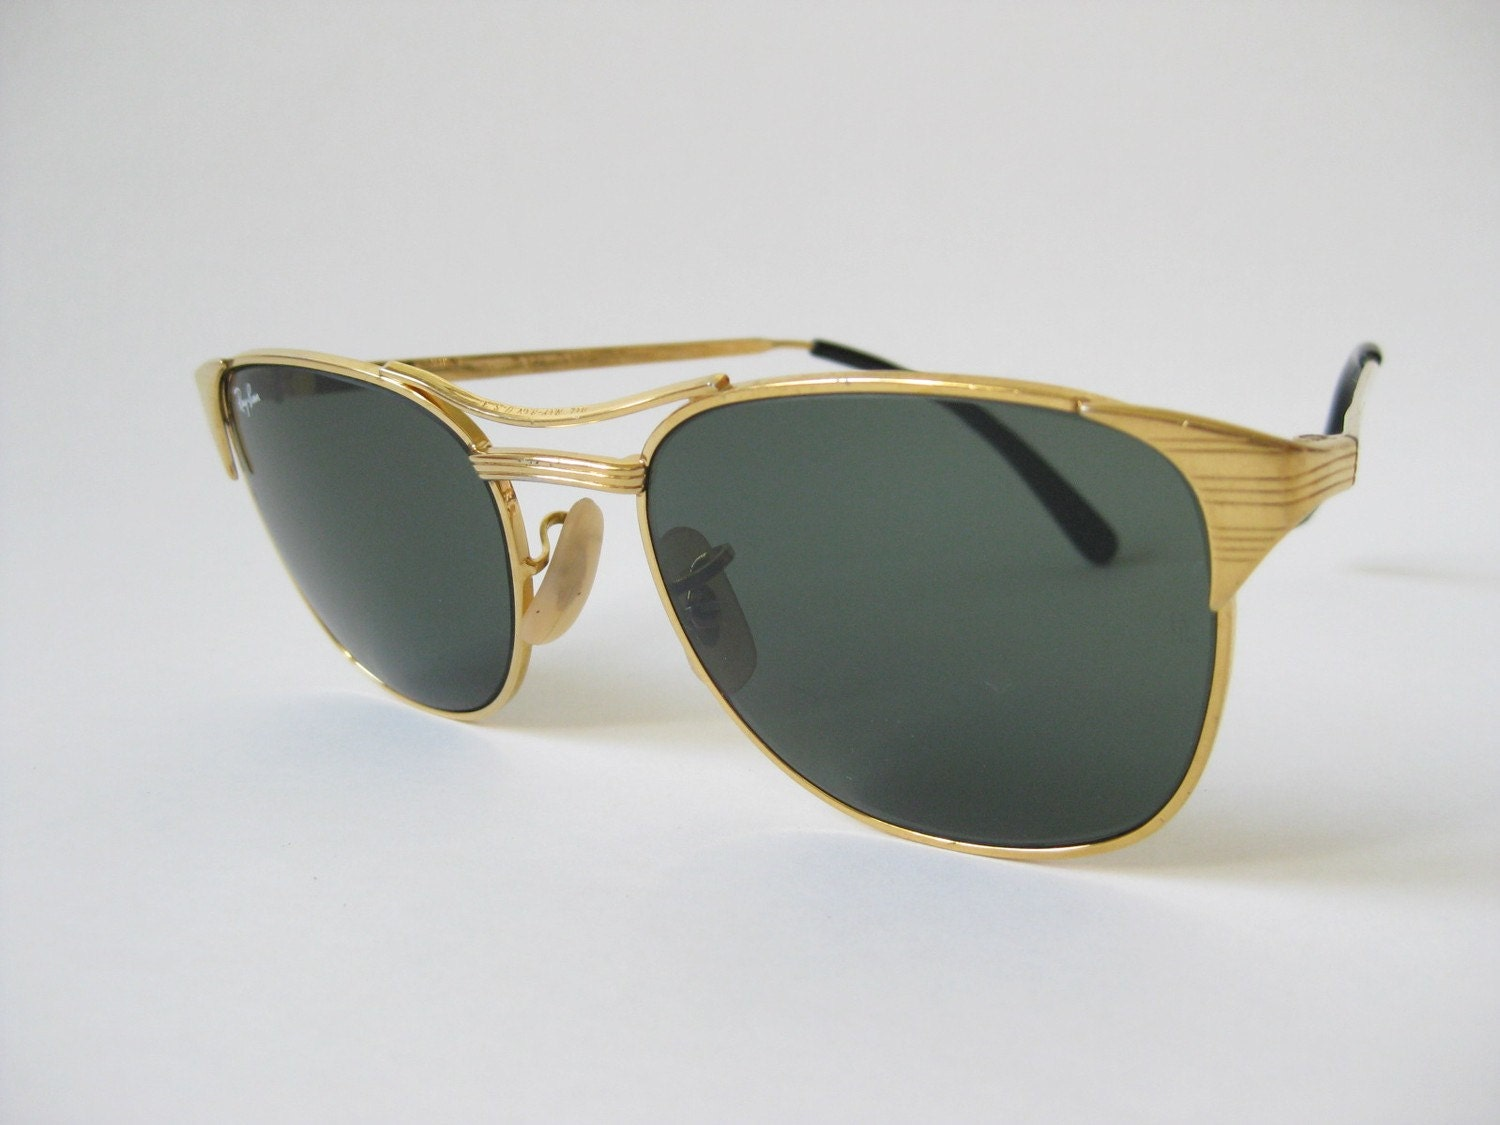 Gold Frame Vintage Glasses : Vintage RAY BAN Signet Gold Frame SUNGLASSES